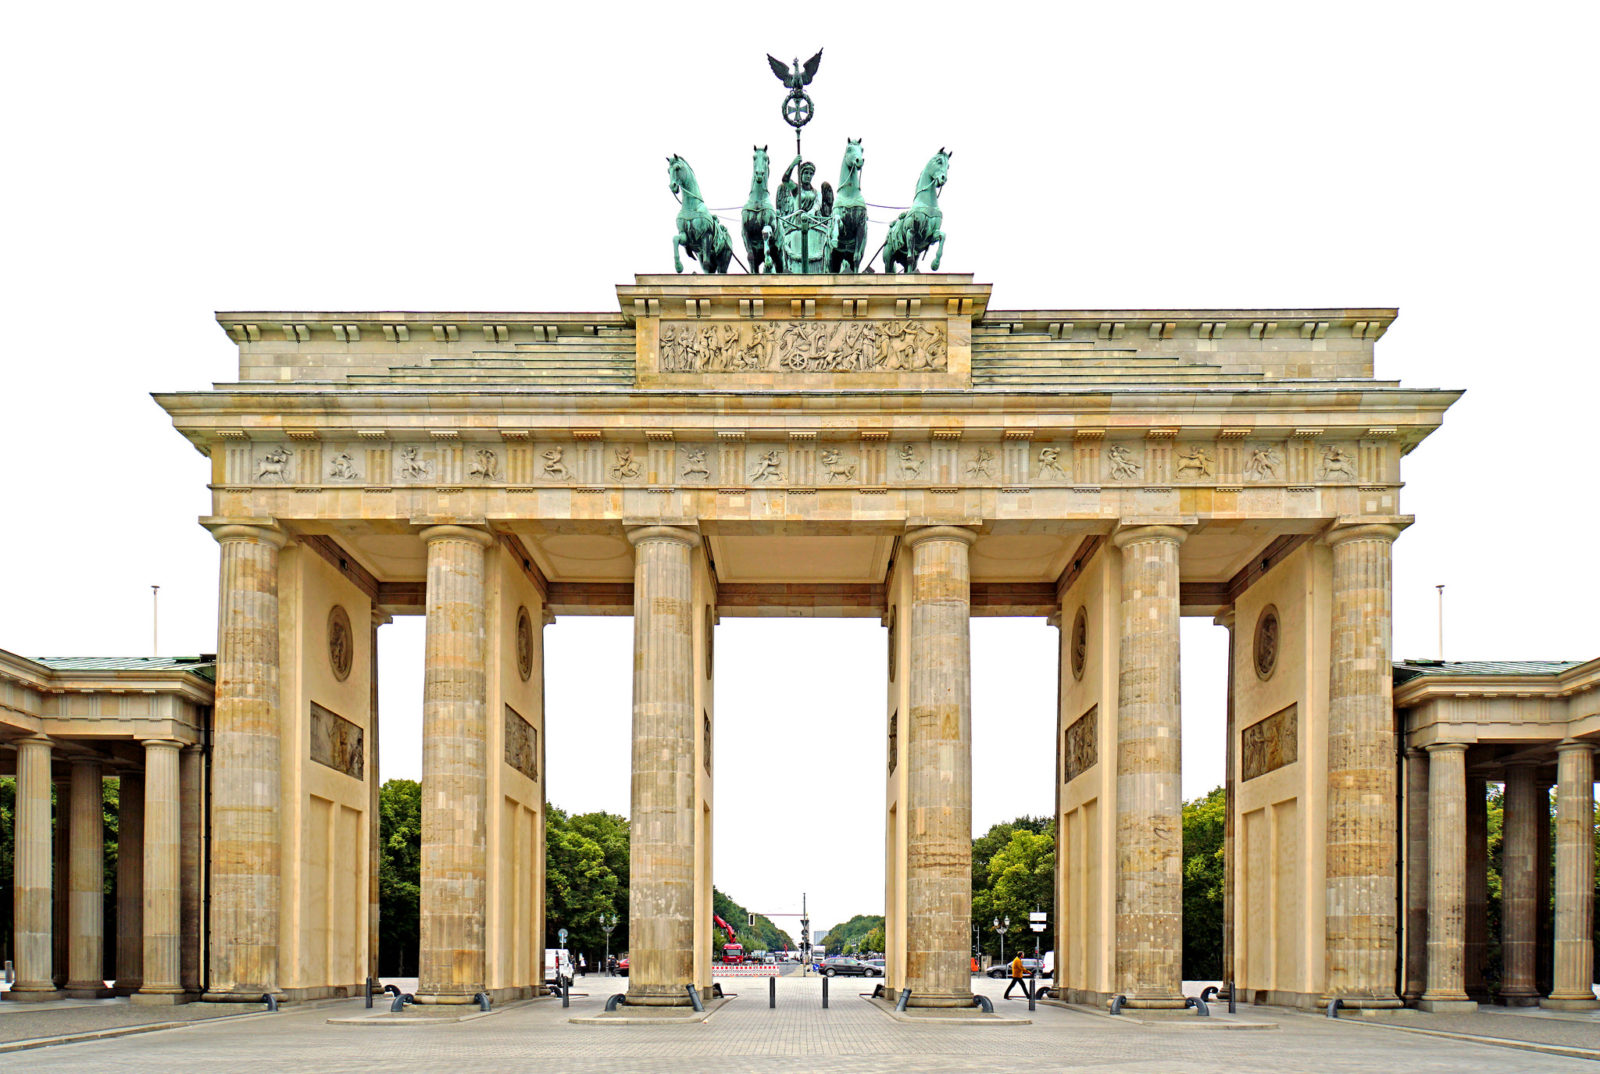 Top Attractions And Things To Do In Berlin, Germany